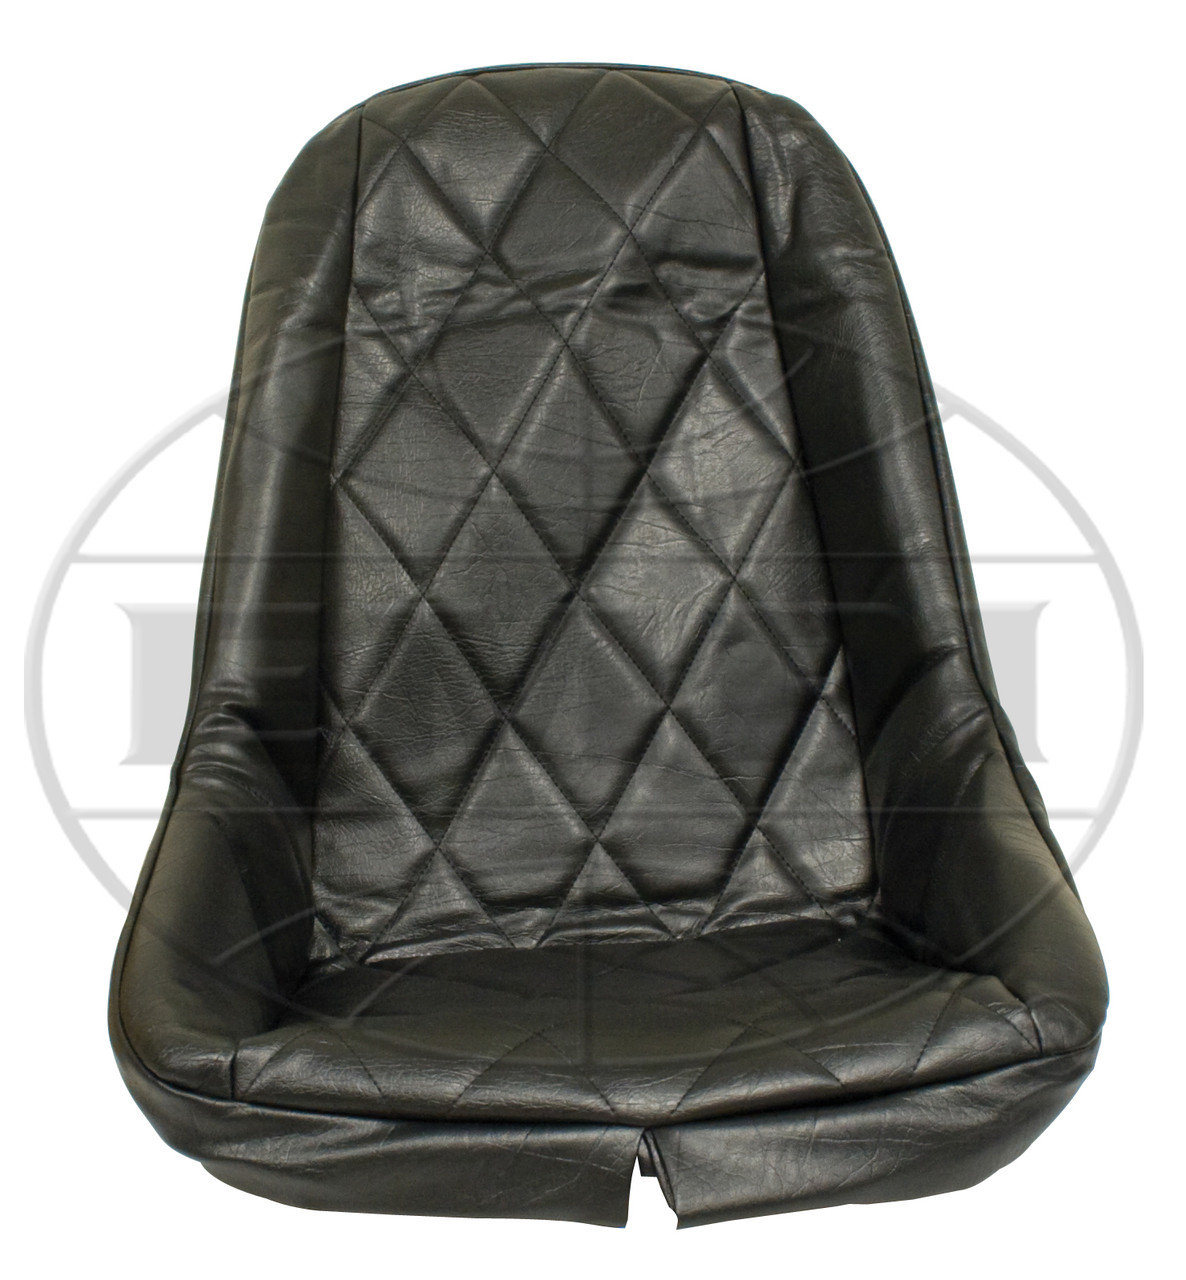 Awesome 00 3880 0 Low Back Seat Cover Black Ea Jus Bugs Uwap Interior Chair Design Uwaporg